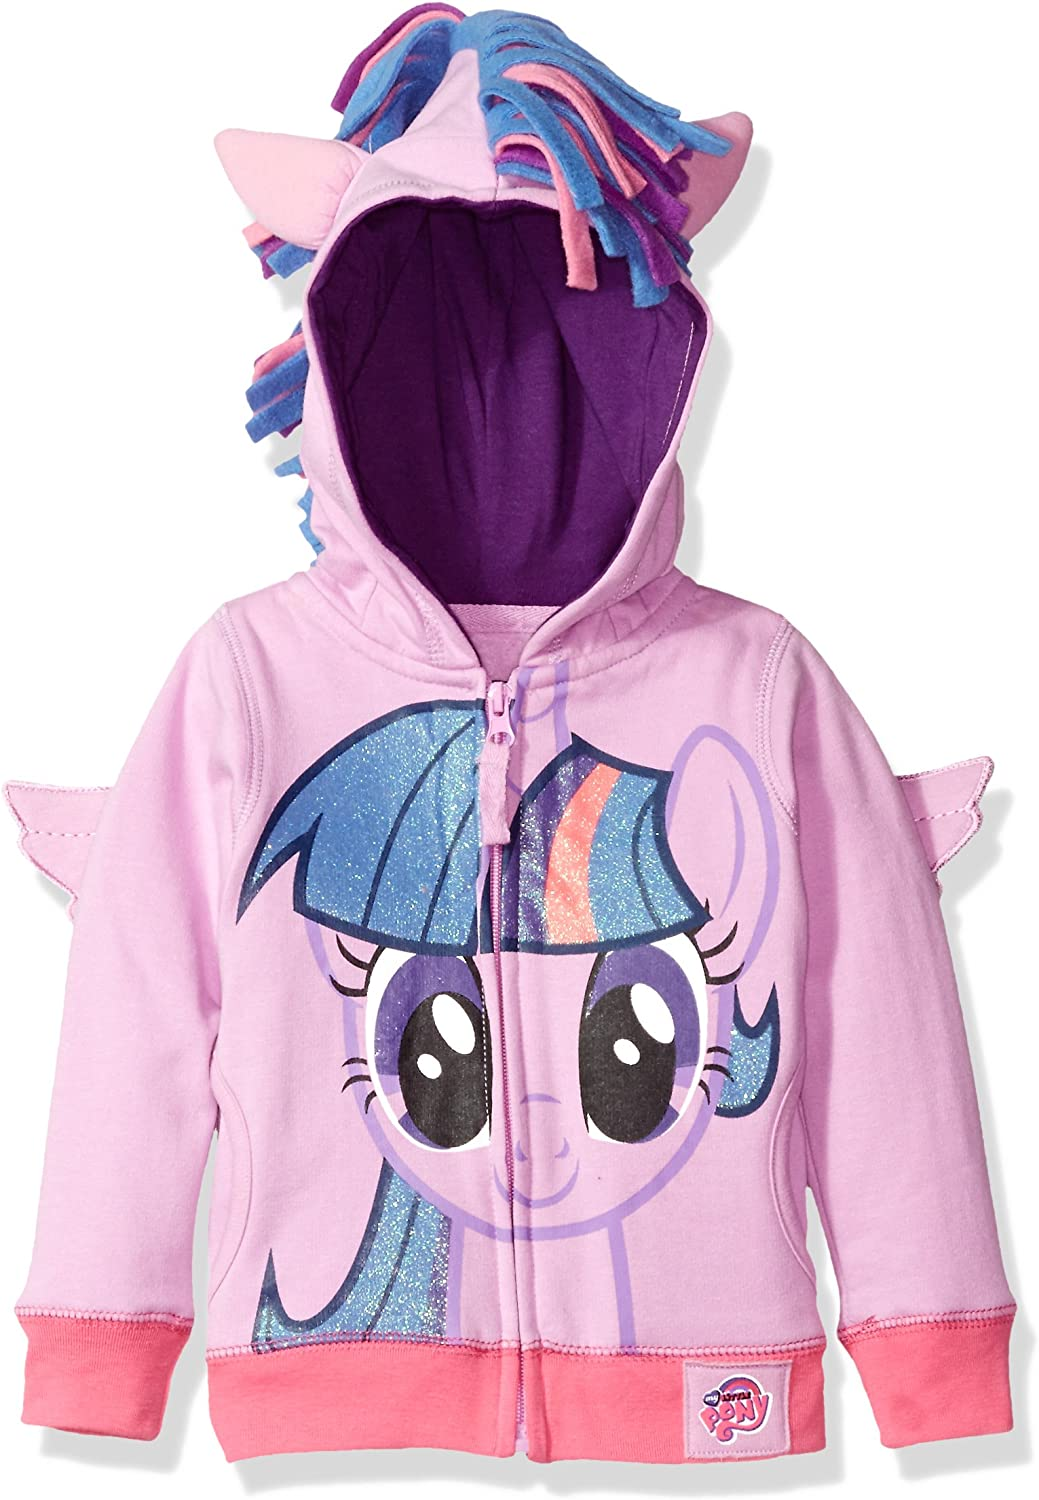 My Little Pony Toddler Girls Zip-up Hoodie: Clothing